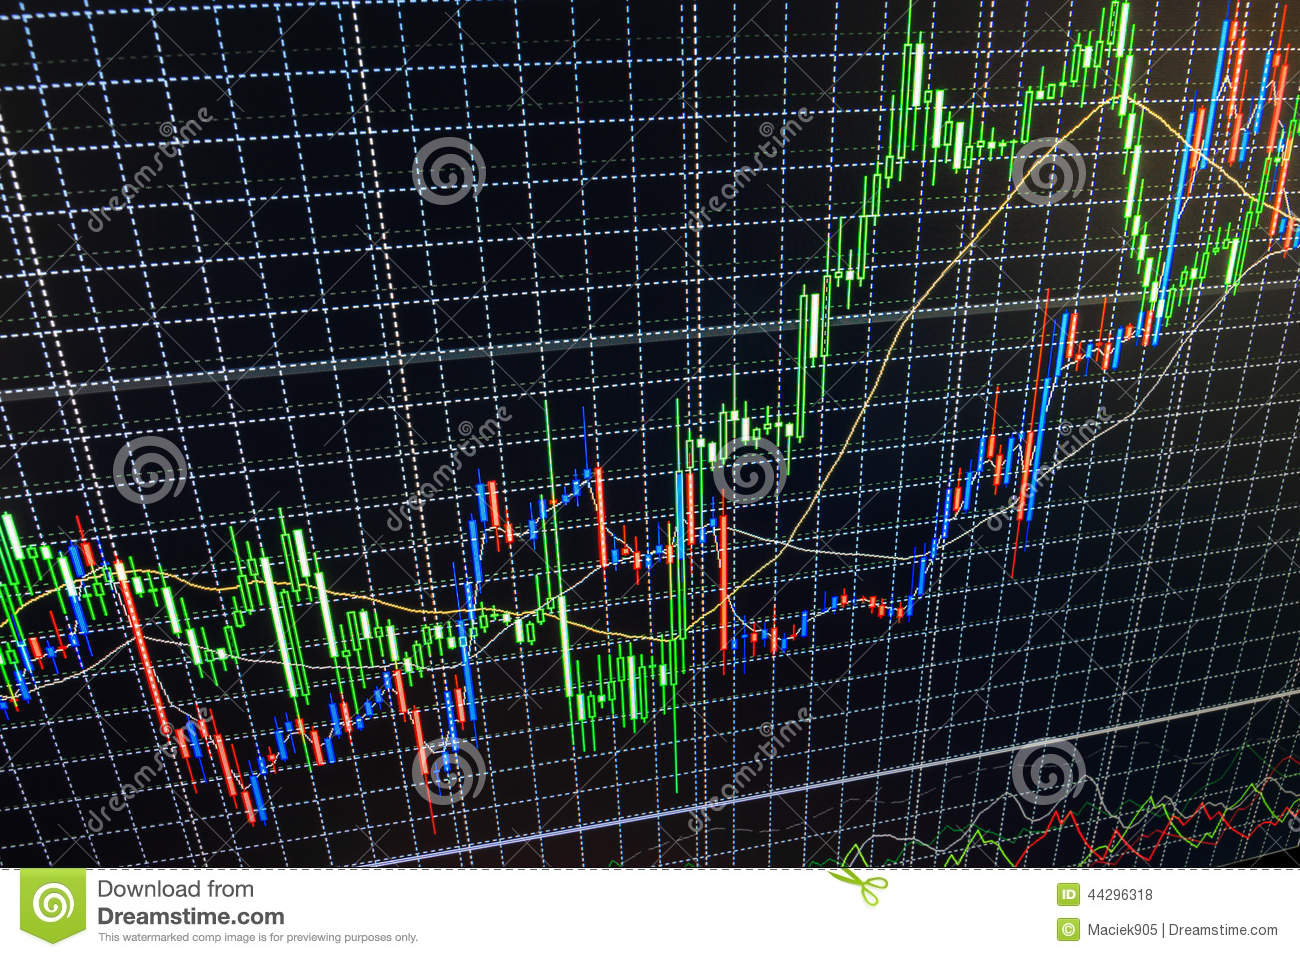 Kitco Live Market Quotes Live Stock Prices  Spot Gold Trading Hours